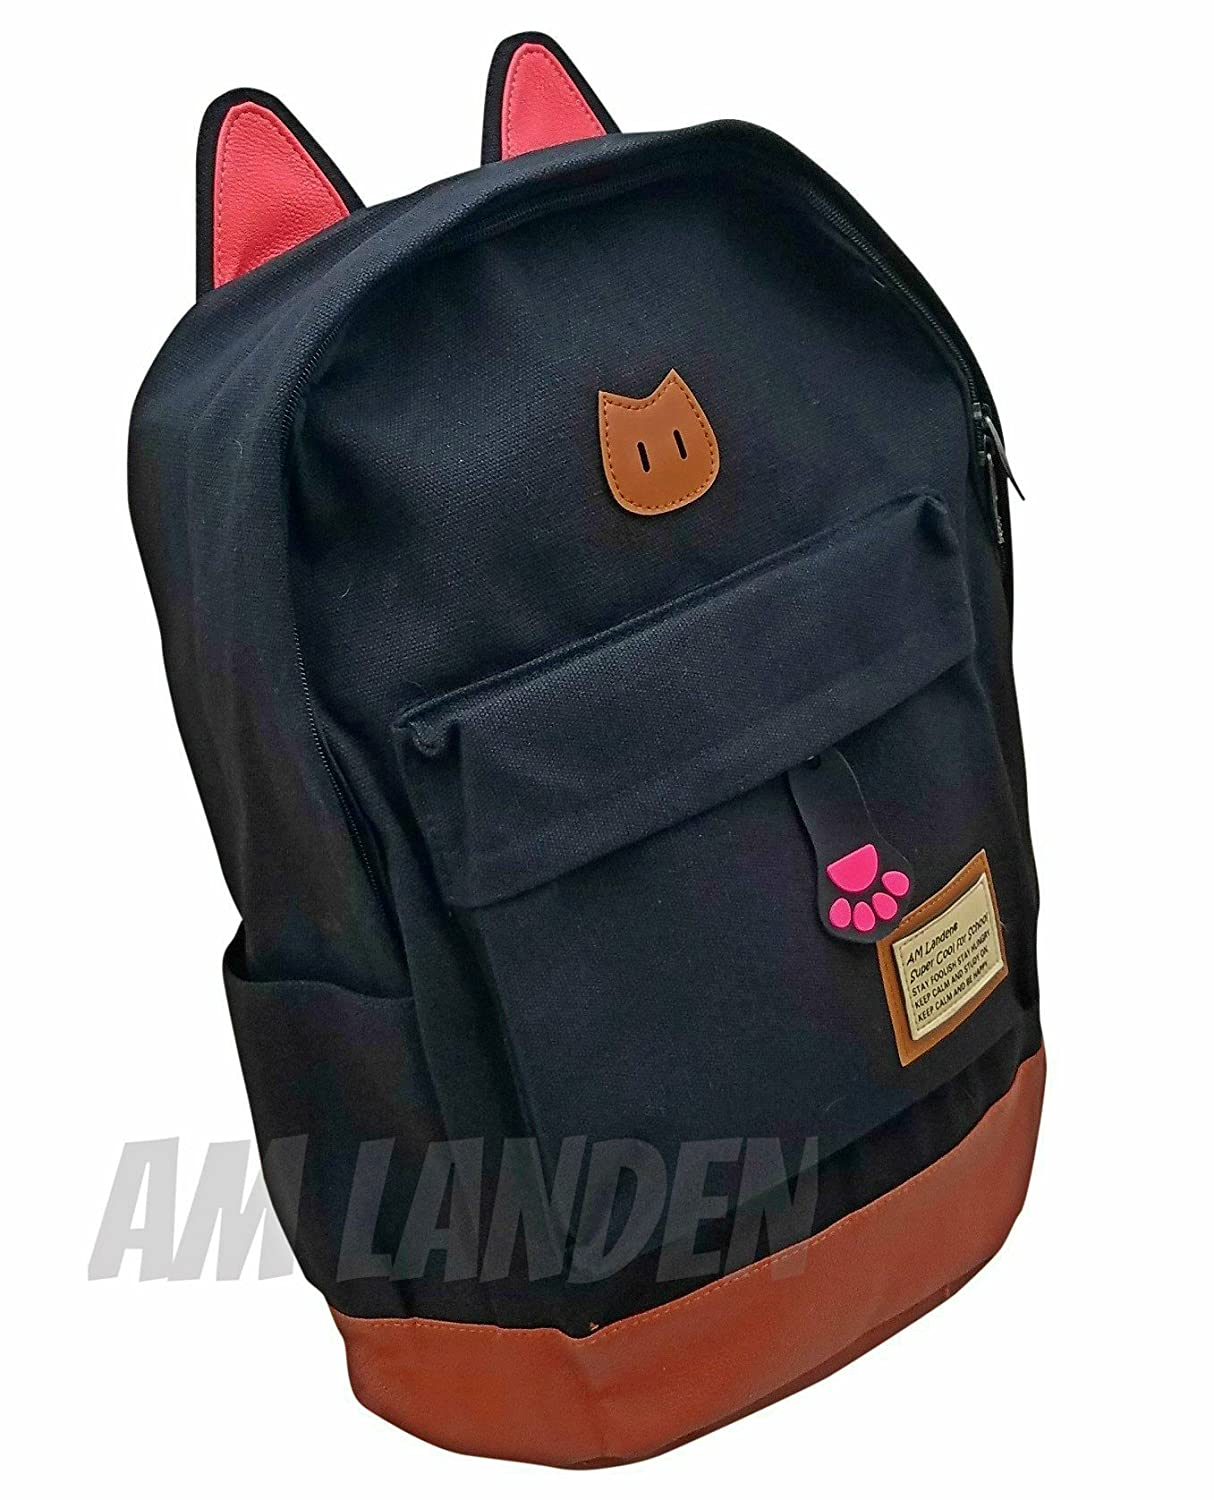 fff105e1b08 Amazon.com   AM Landen CAT Ears Backpack Kid Backpack Travel Daypack  Handbag LARGE SMALL (Large-improved quality with Tablet slot, Large-Black)    Kids  ...